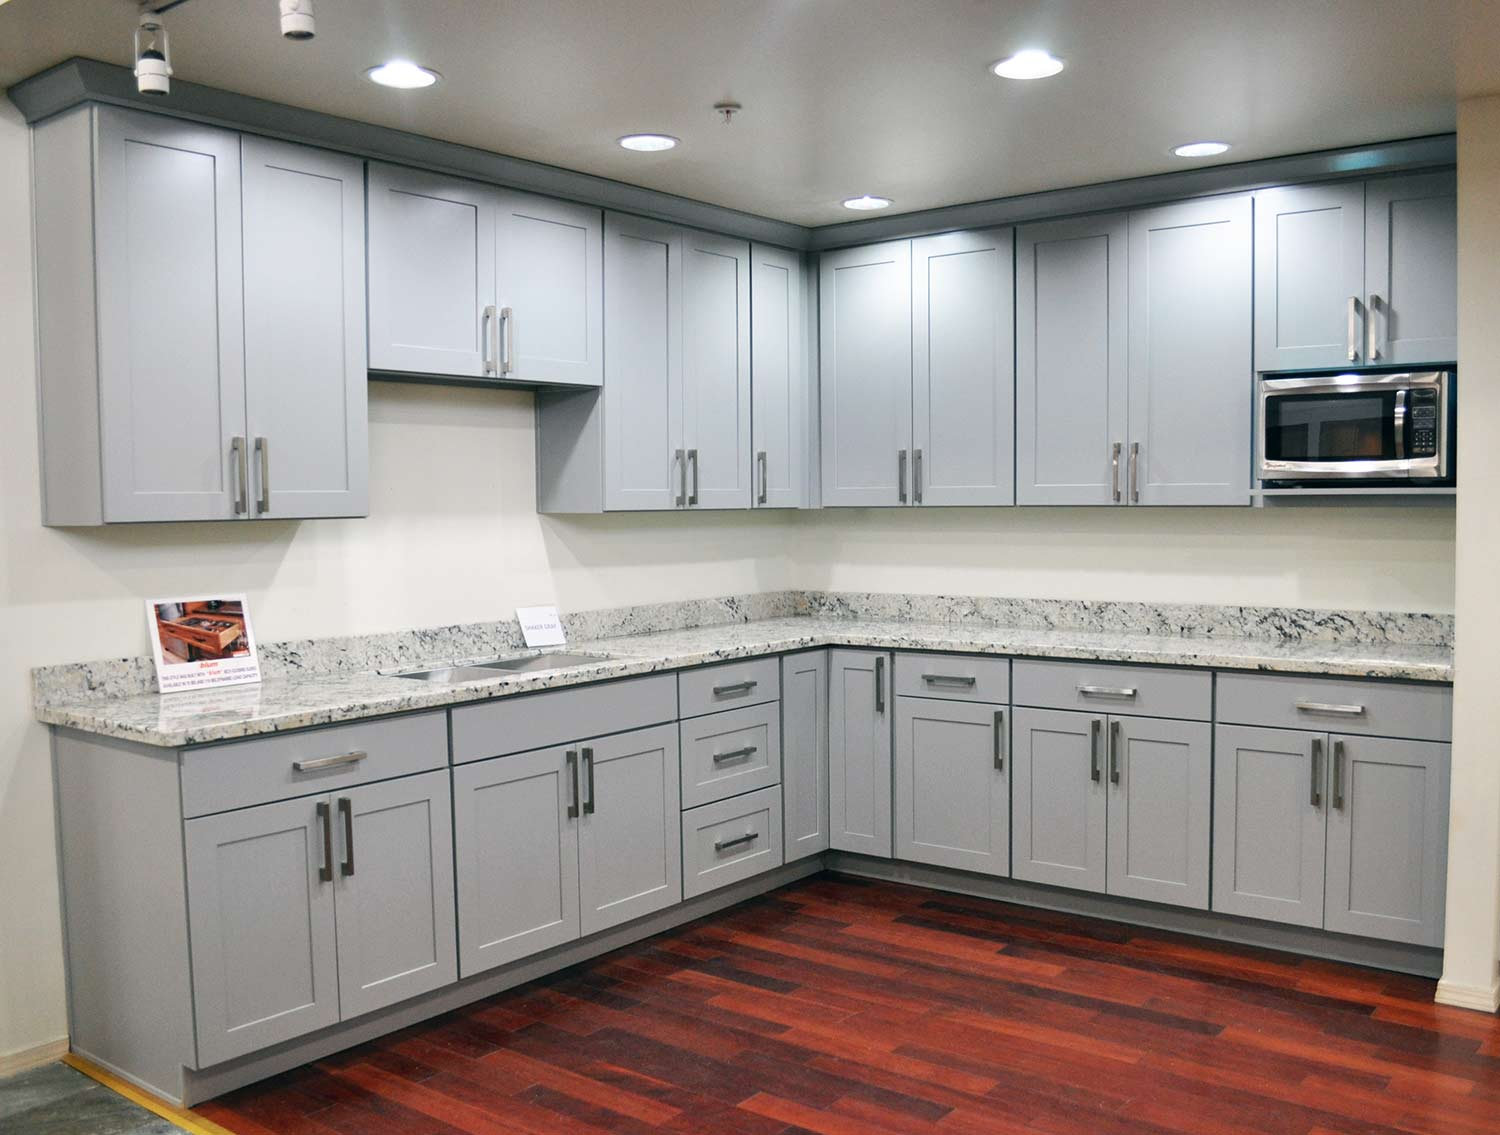 exhaust fan kitchen tile flooring ideas maple | gs building supply inc.